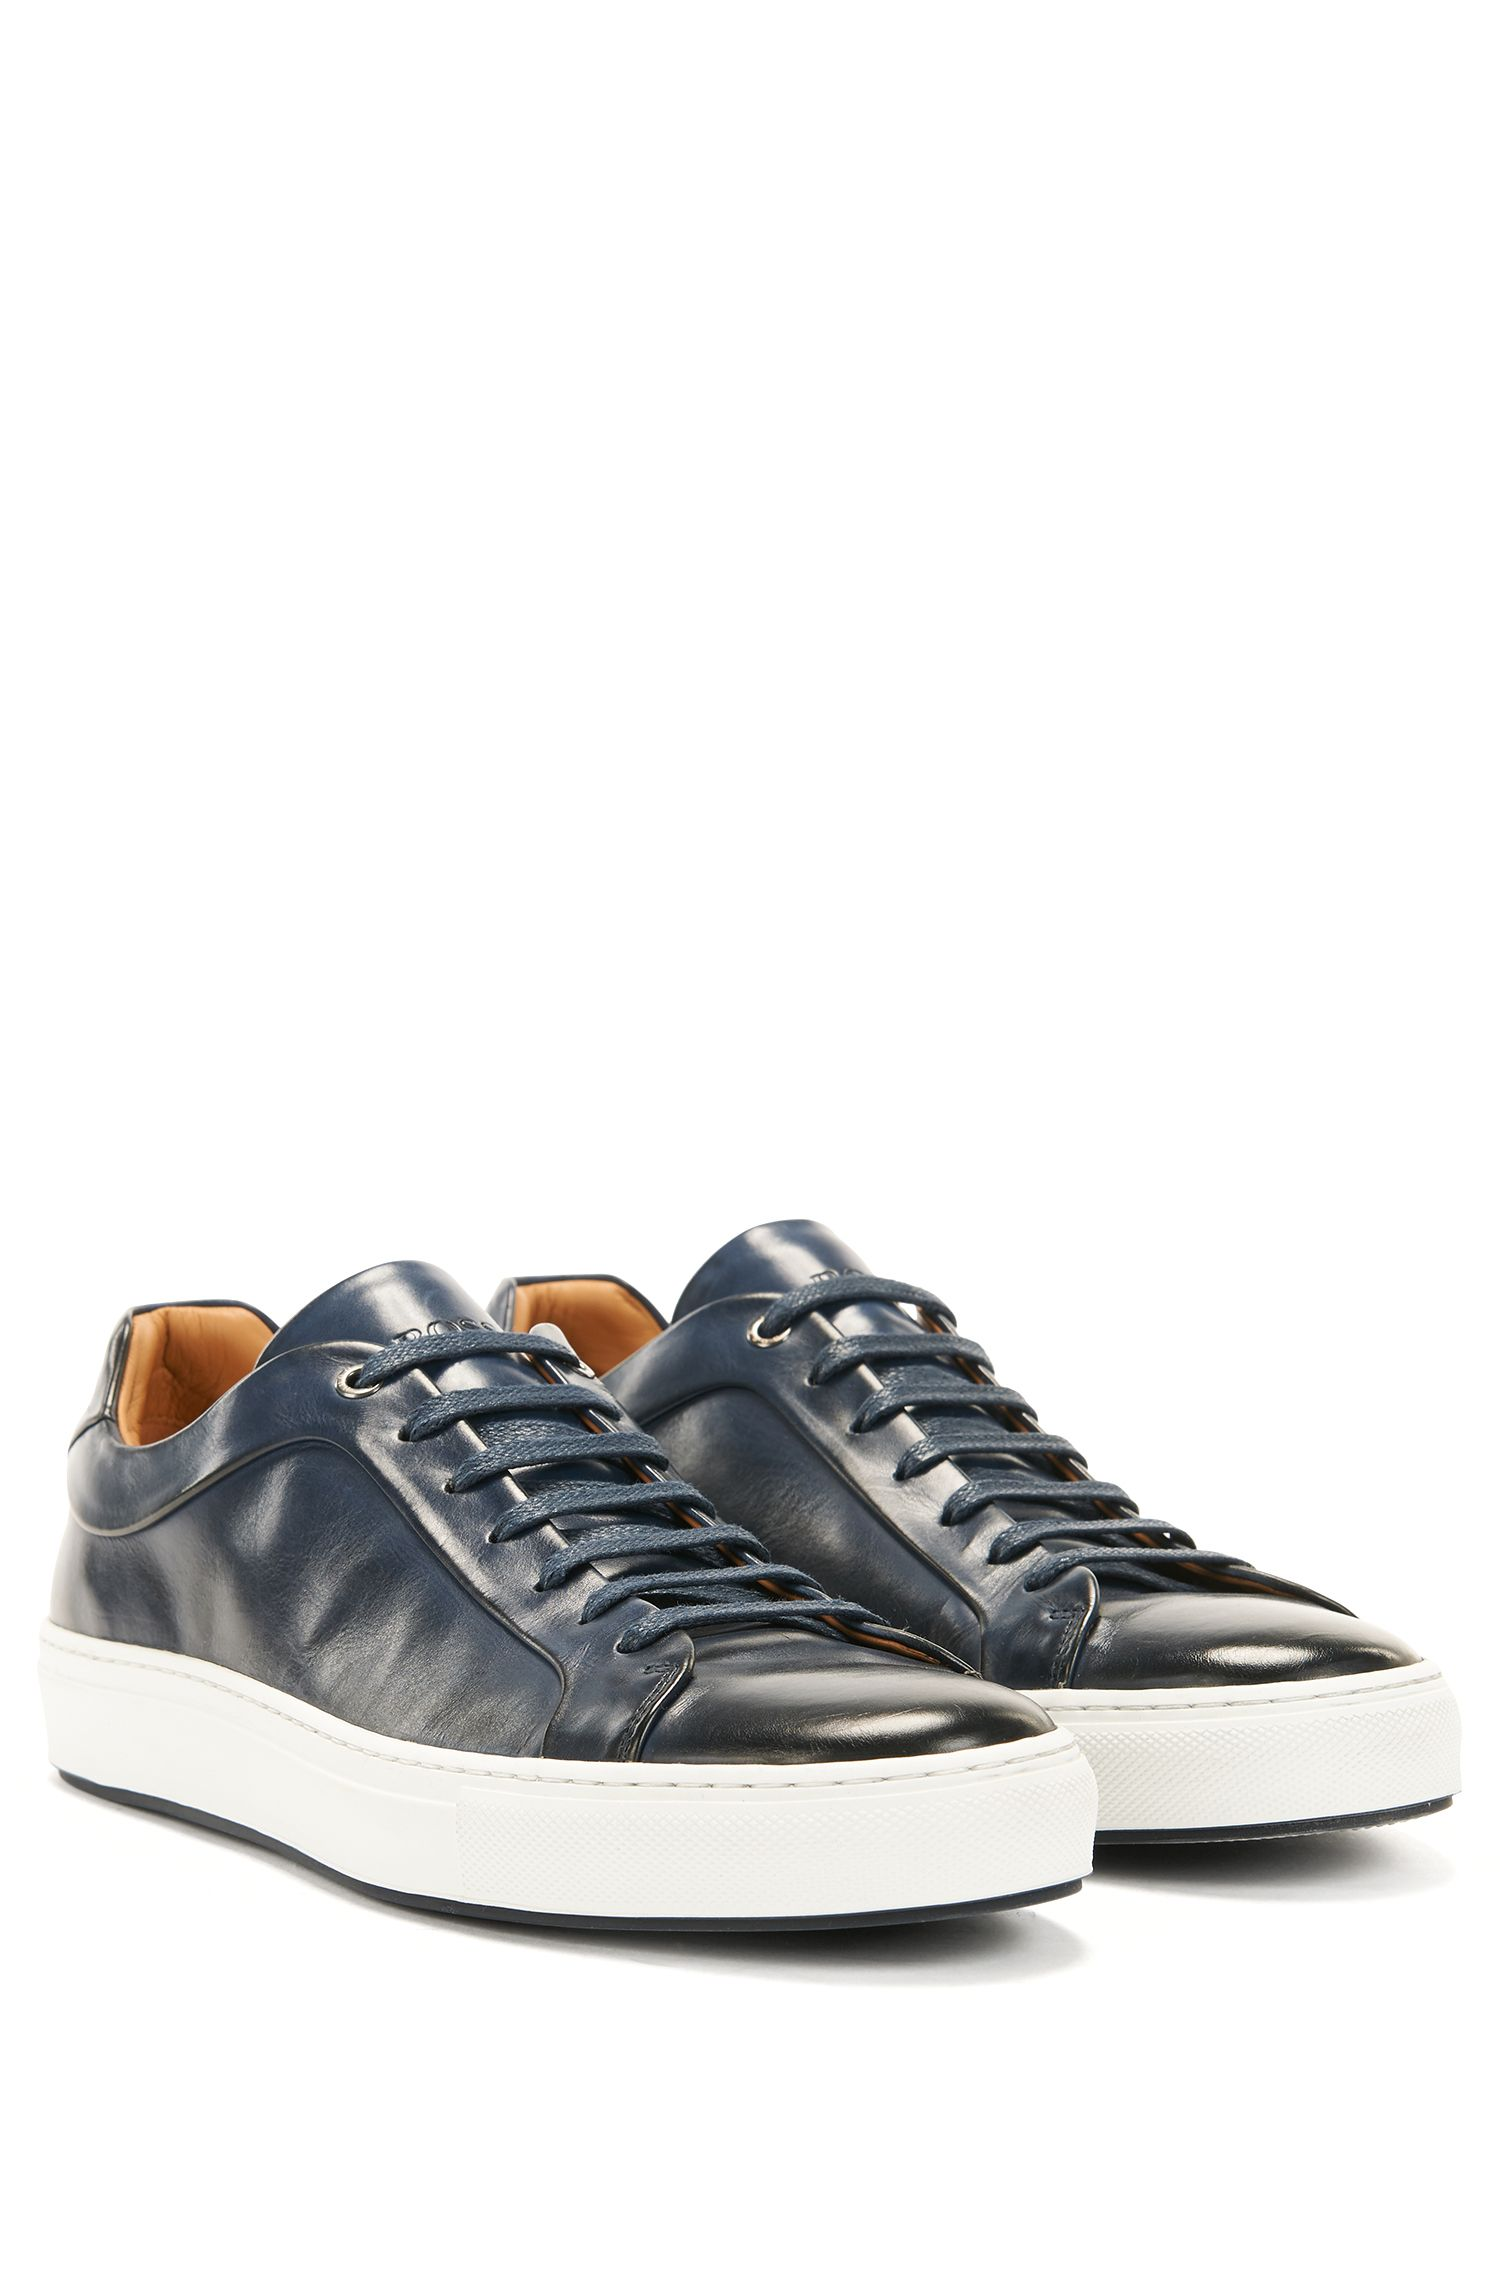 Tennis-style sneakers in burnished leather